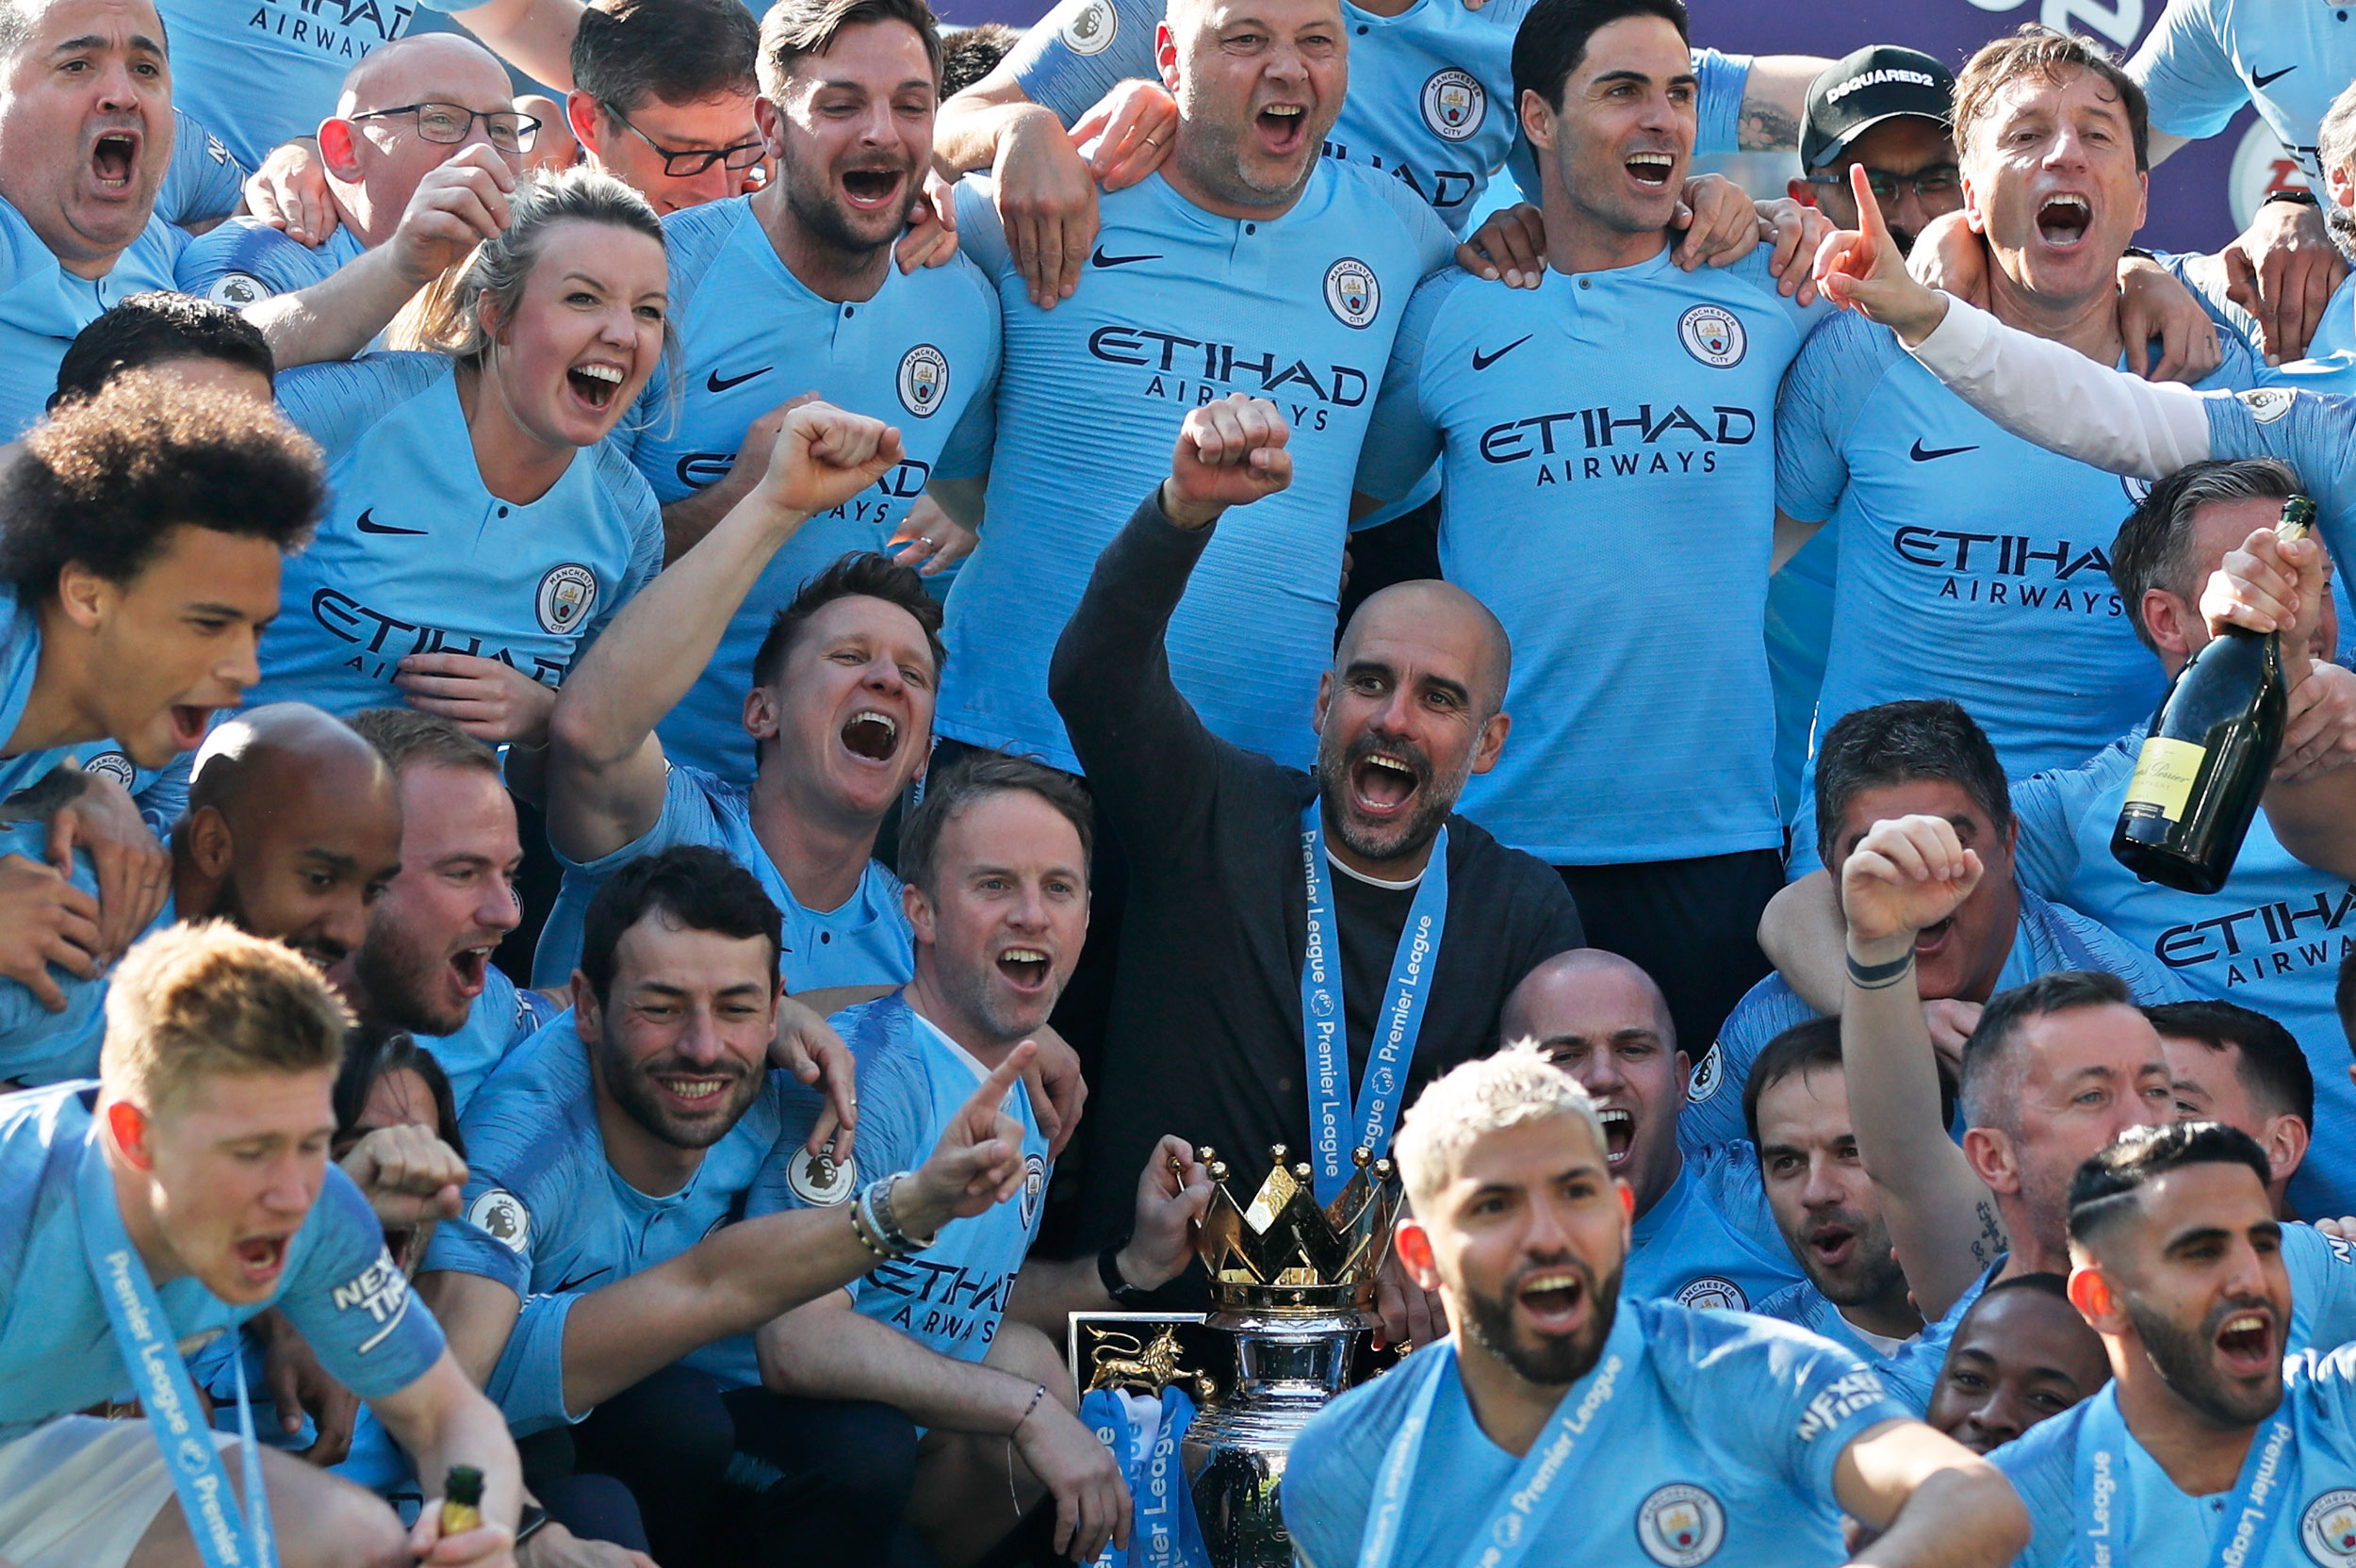 Manchester City players and support staff with the Premier League trophy in Brighton on Sunday.